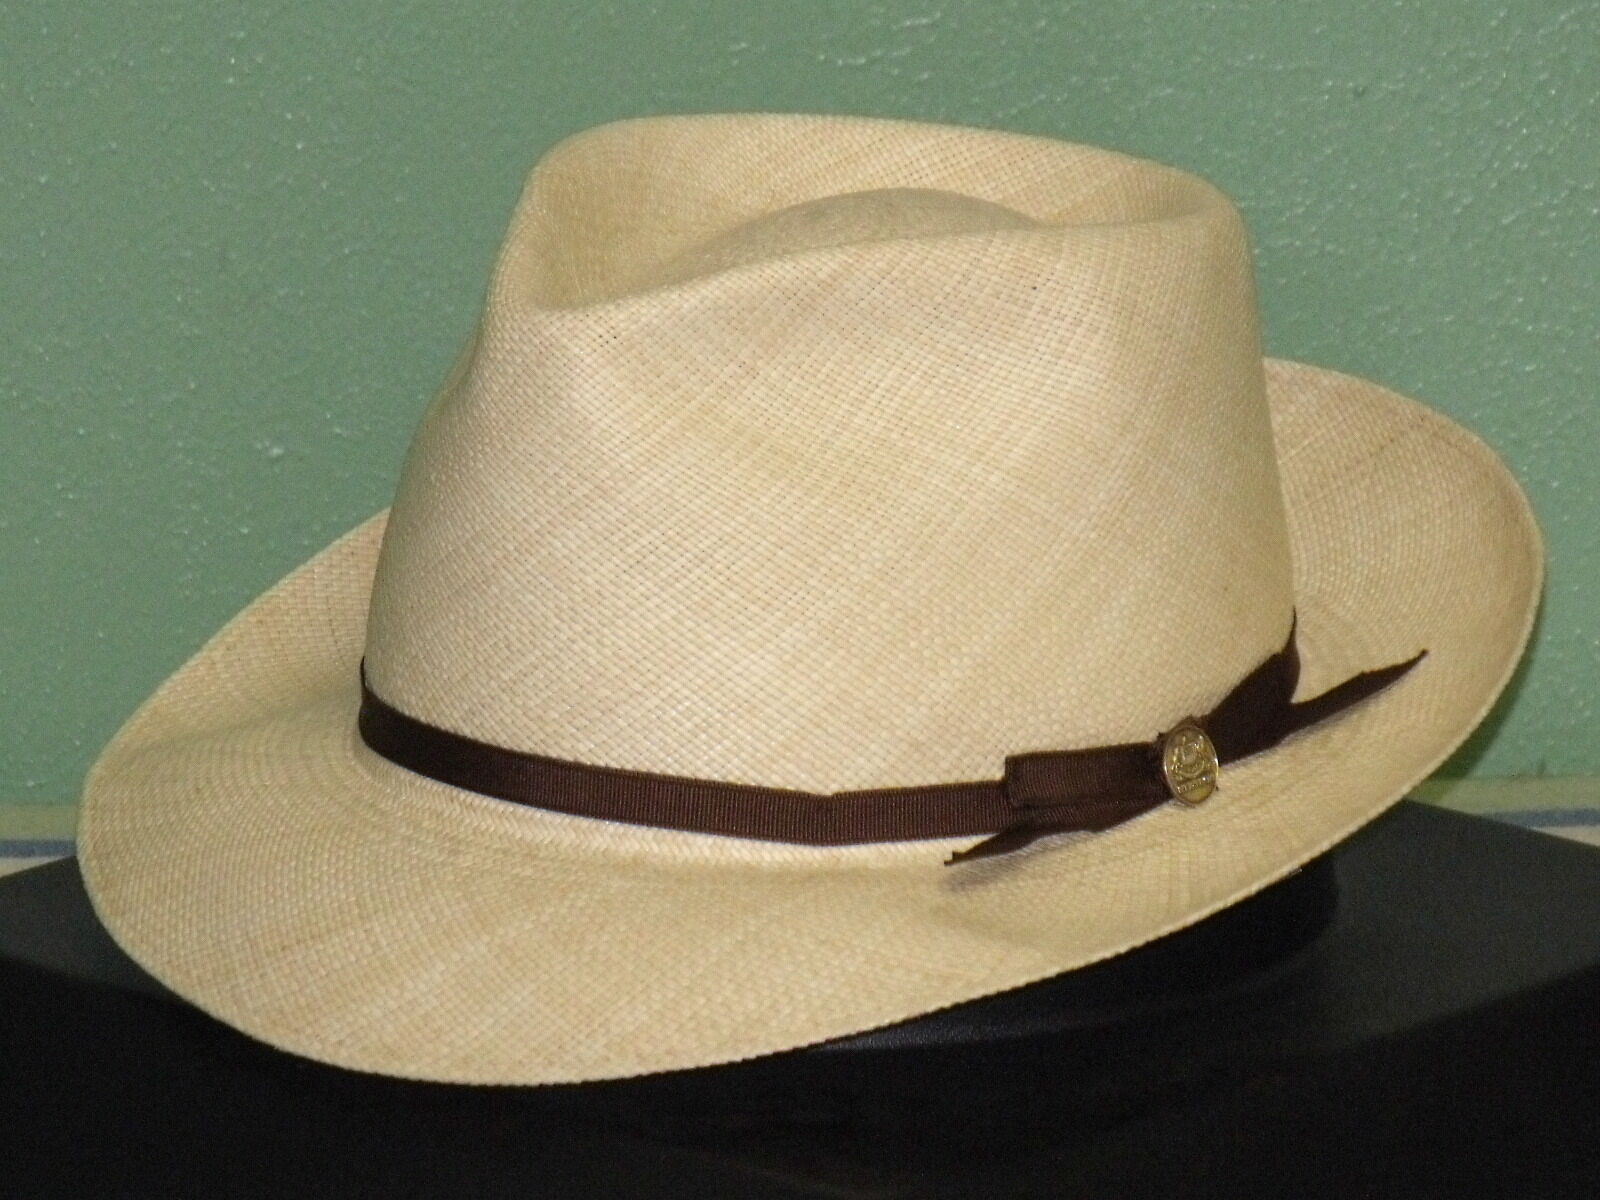 STETSON FORTY-EIGHT FORTY-EIGHT STETSON GENUINE PANAMA FEDORA HAT 967878